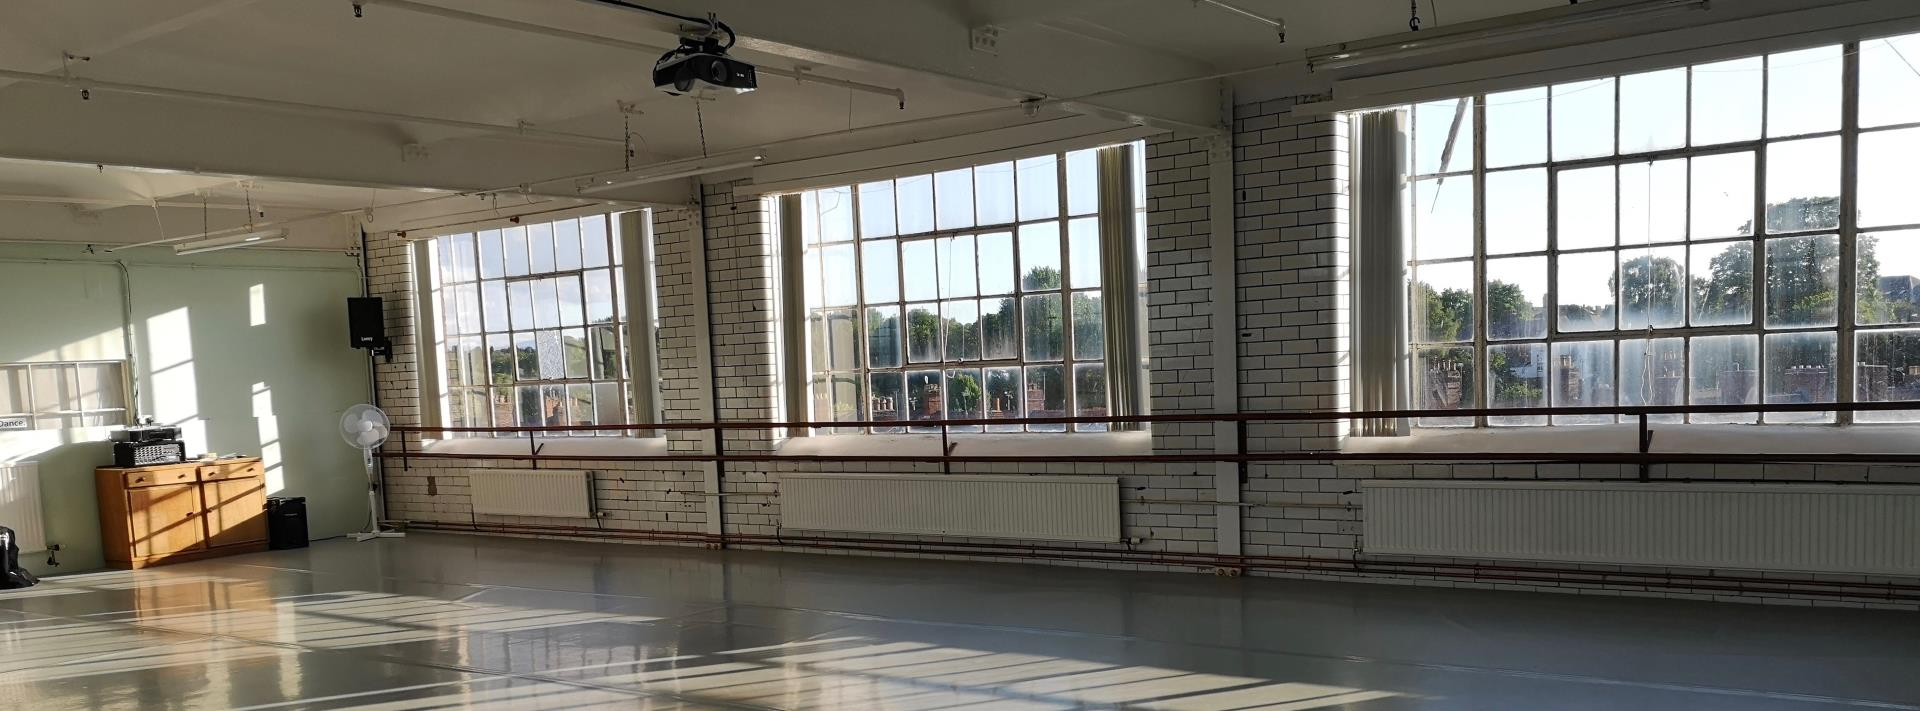 Dance classes in Carlisle, Cumbria